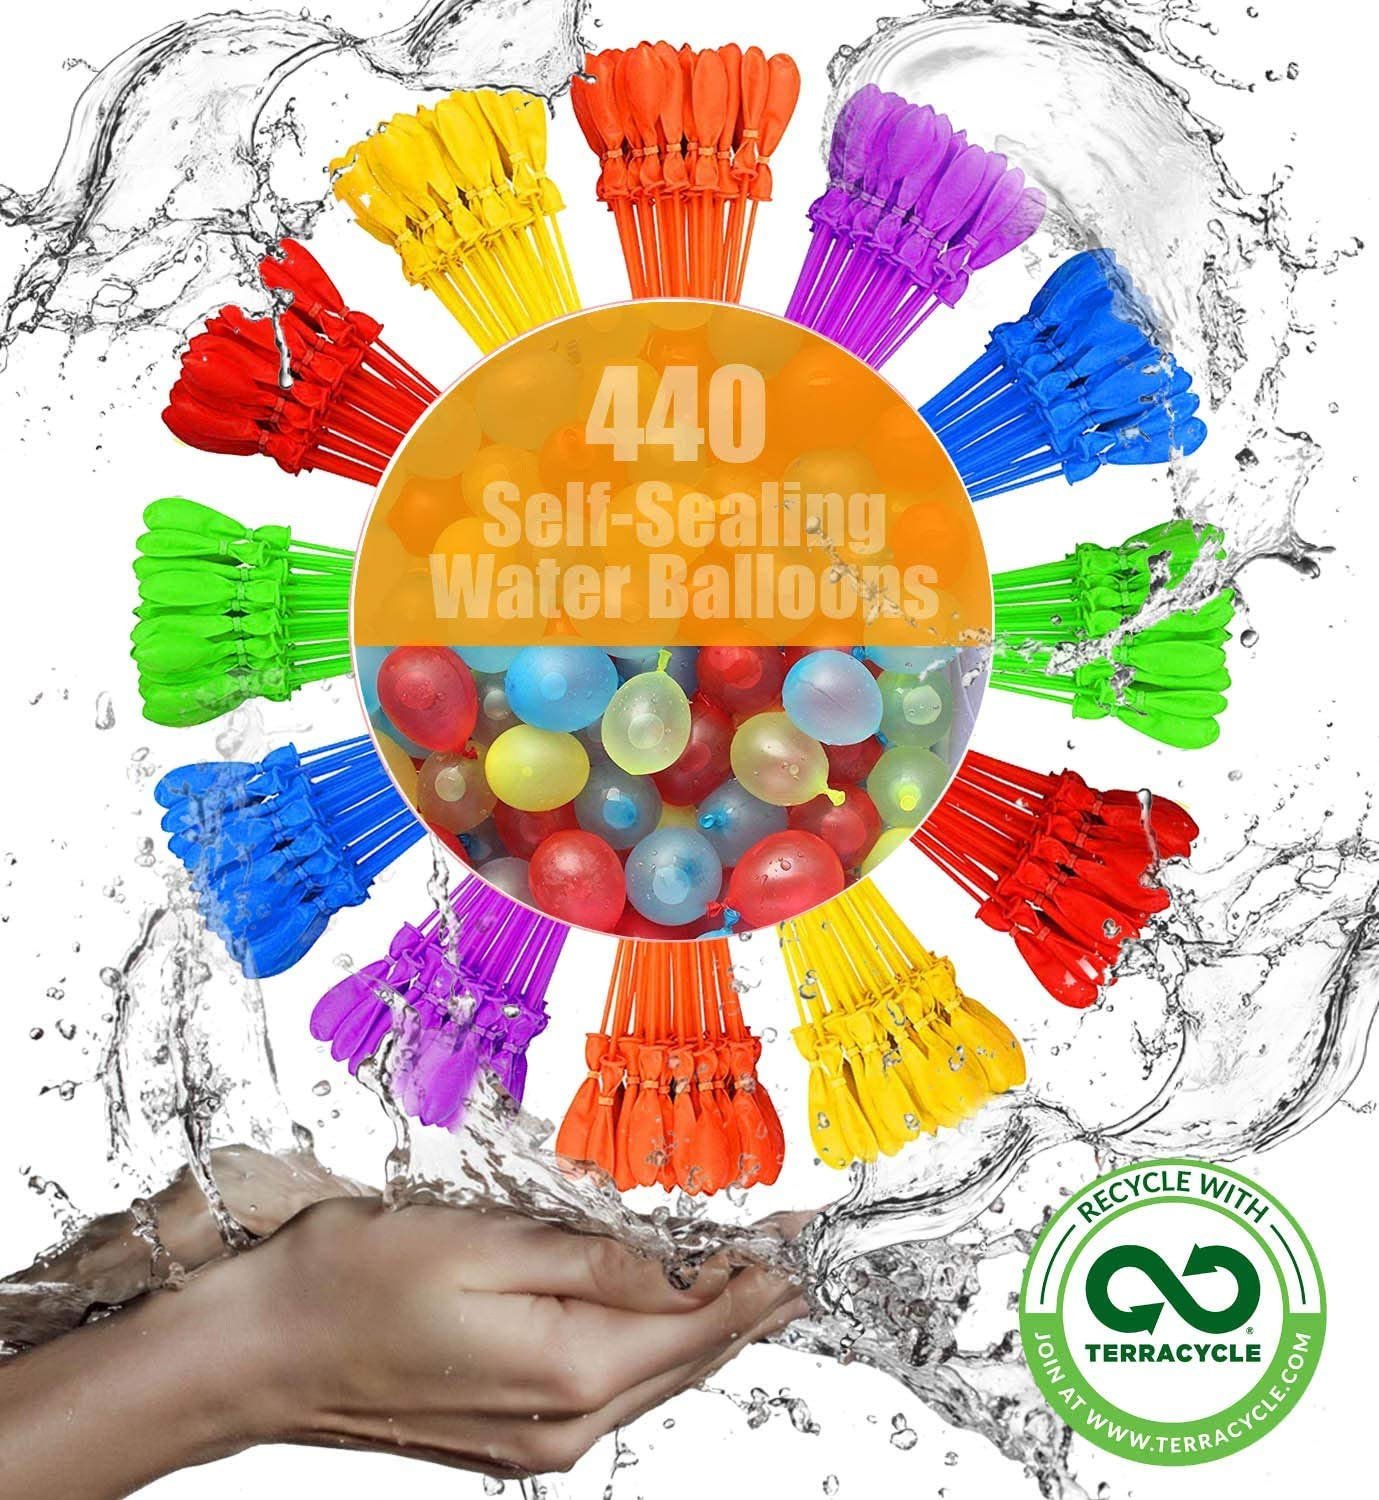 Self-Sealing Water Balloons 440 Instant Balloons Easy Quick Fill Balloons with in 60 Second Splash Fun Rapid-Filling for Kids and Adults Party S0h57